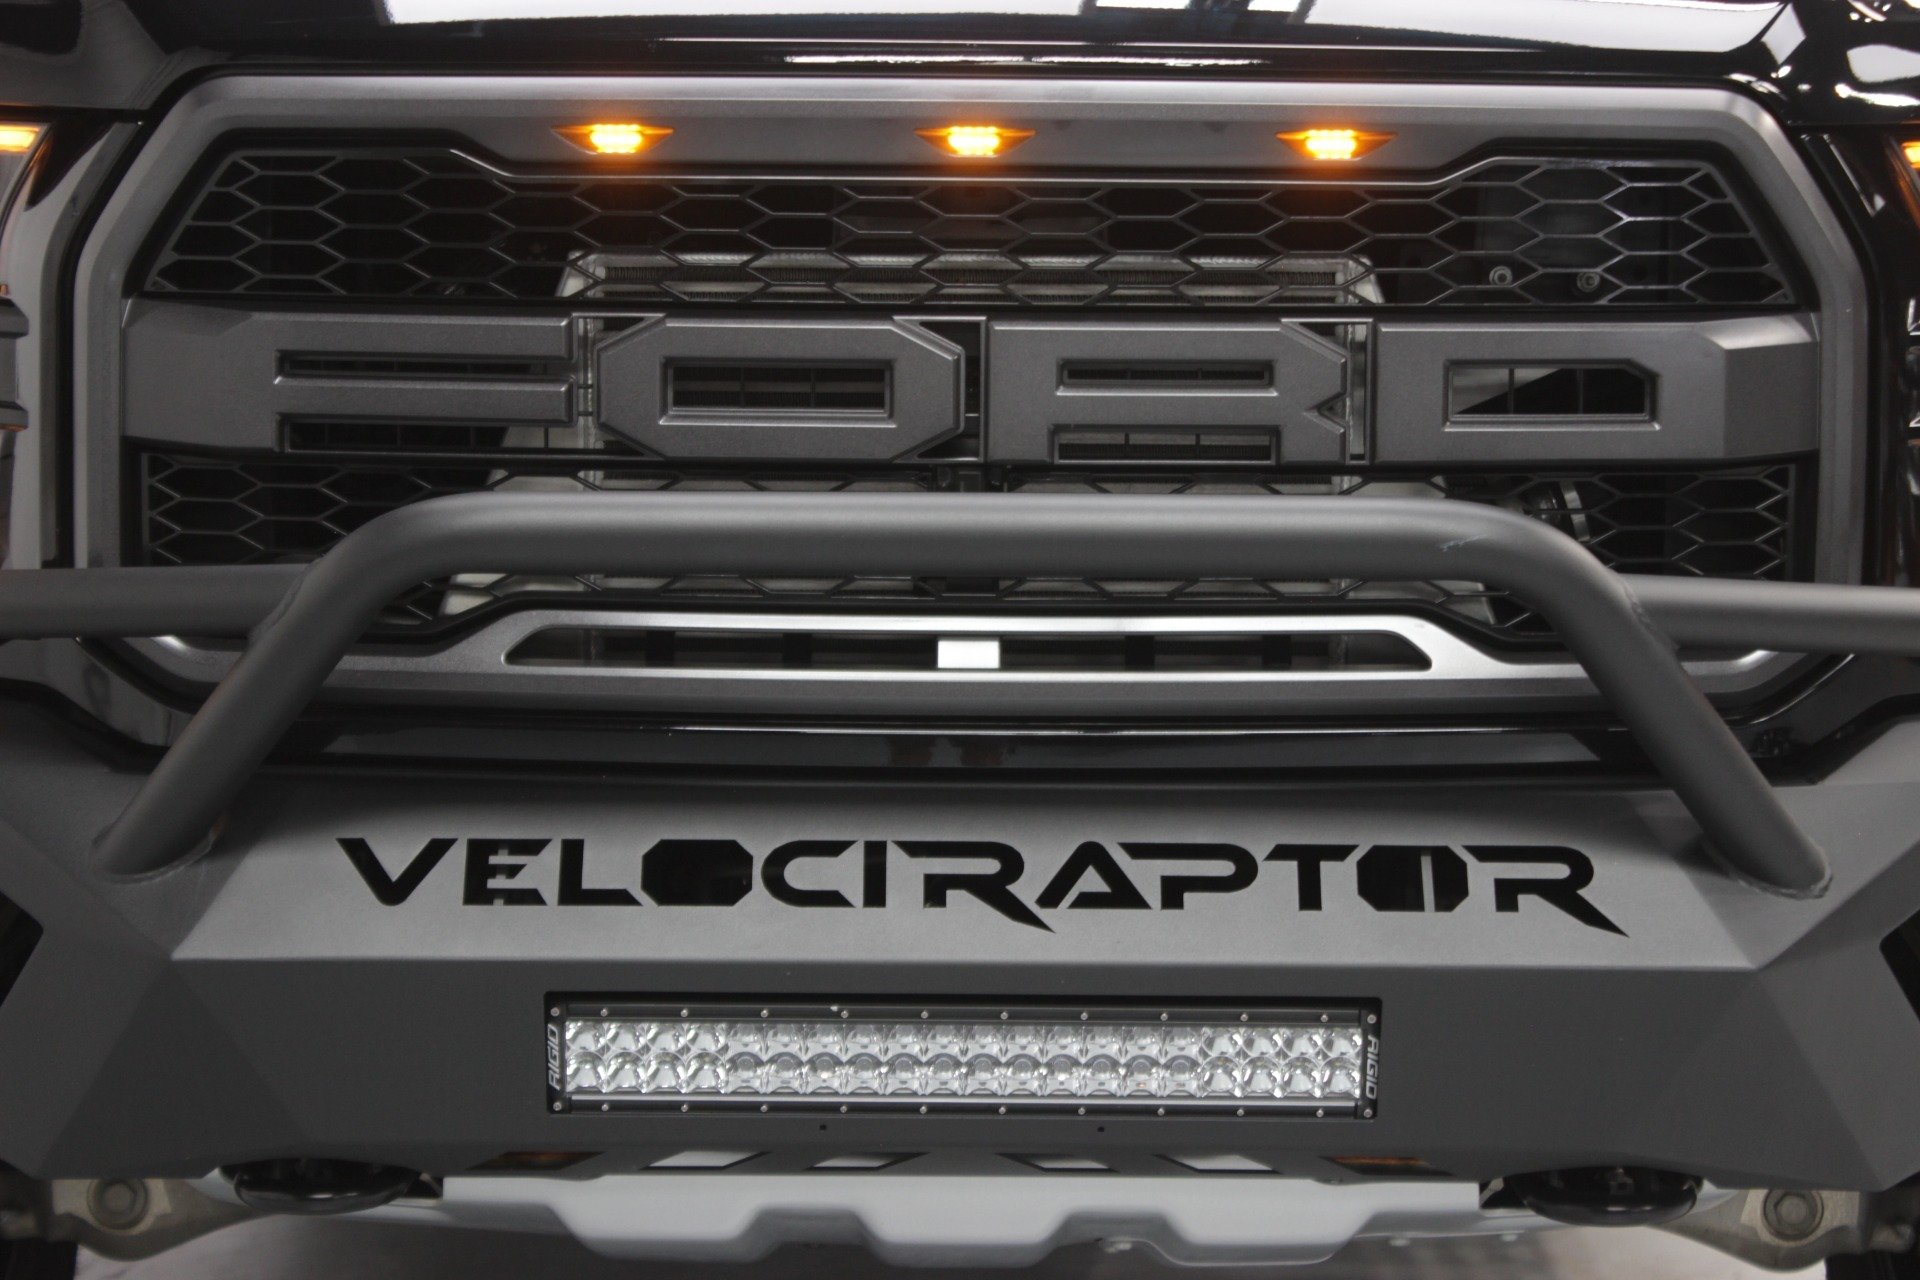 Used 2019 Ford F-150 RAPTOR 4x4 HENNESSY VELOCIRAPTOR VR600 UPGRADE (600HP) for sale $109,995 at Formula Imports in Charlotte NC 28227 8